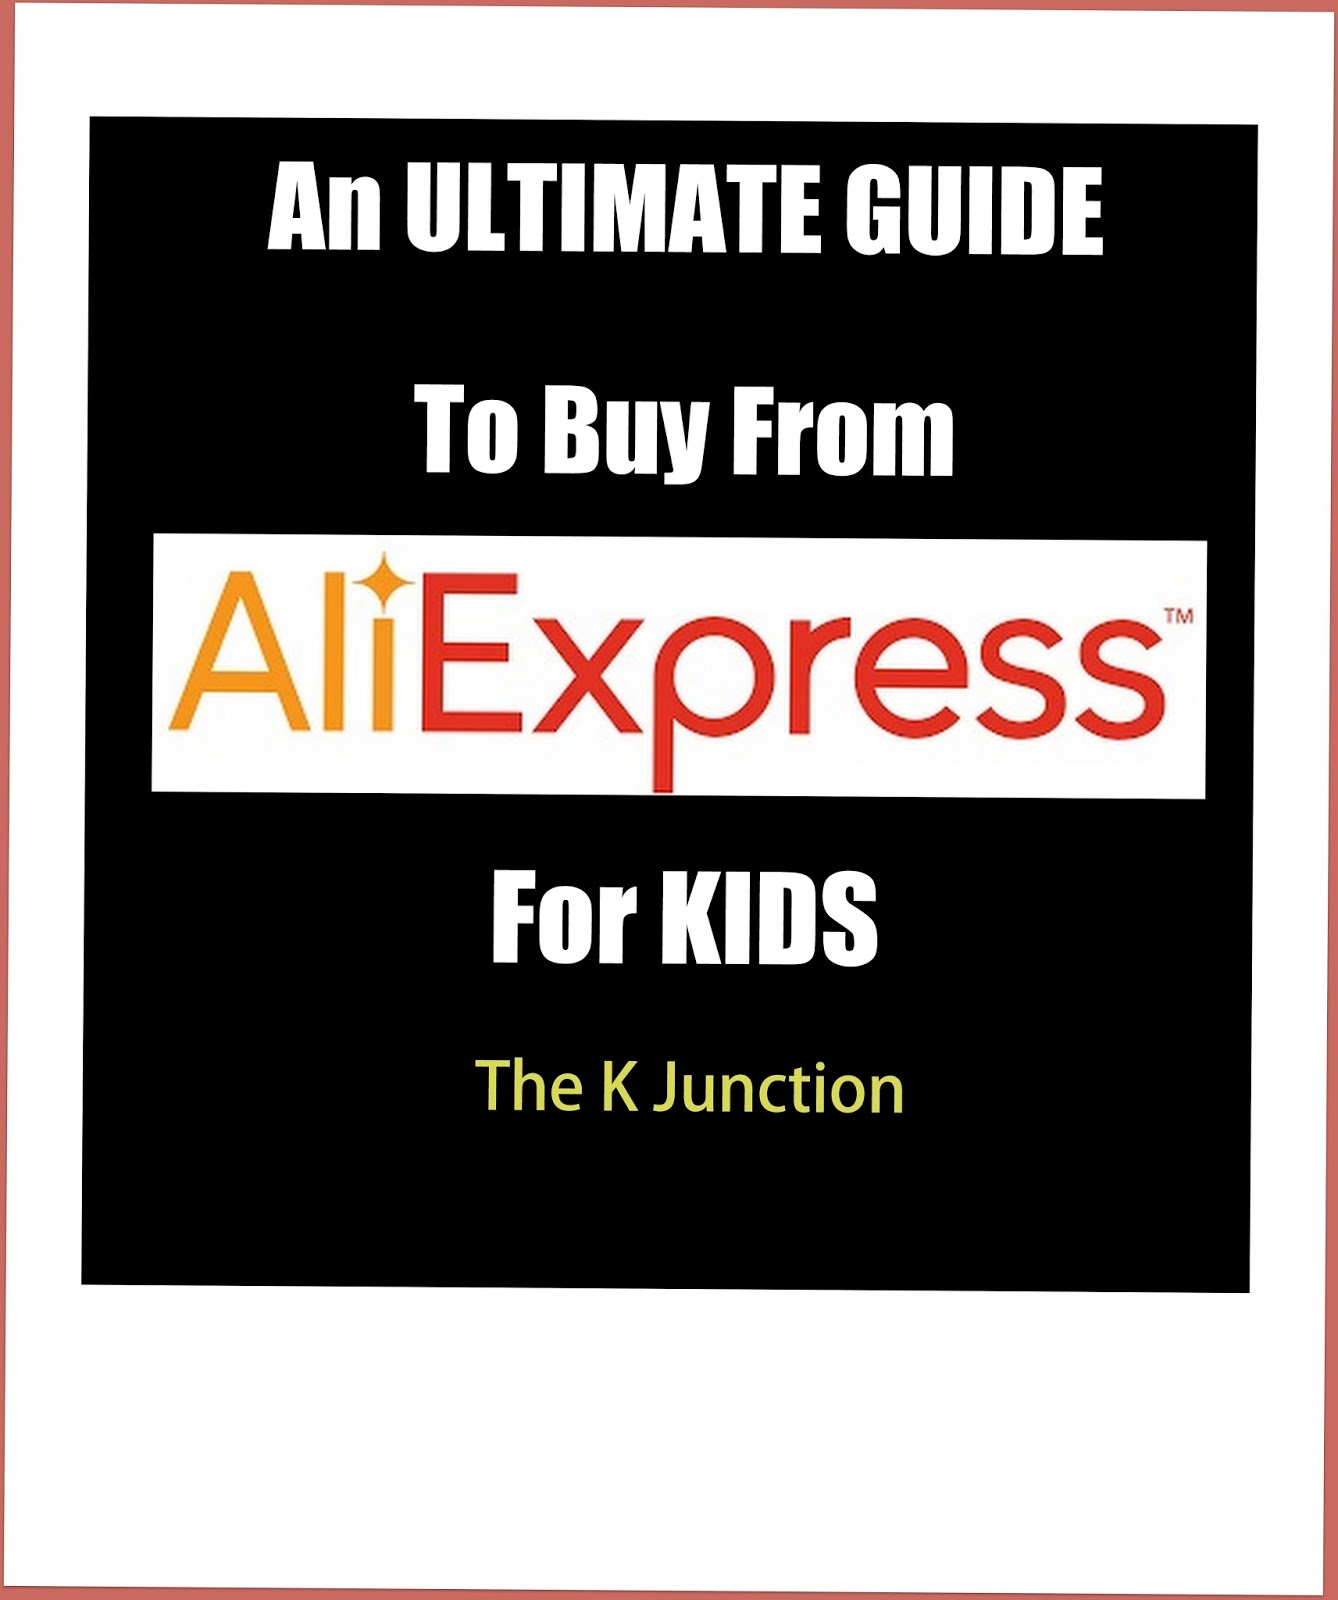 Unpacking the parcel with Aliexpress: a guide to avoid misunderstandings 80